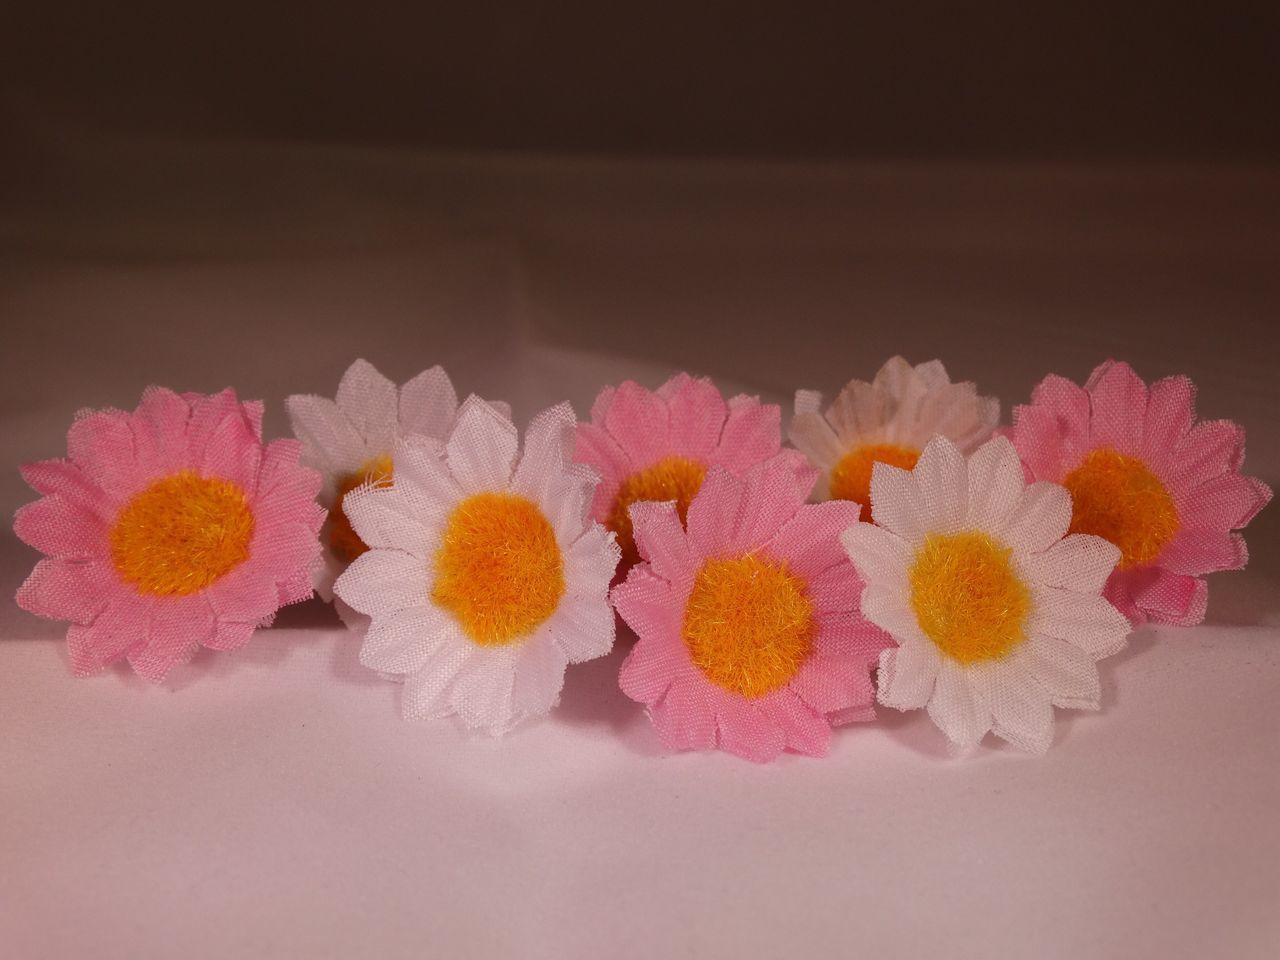 Decorative flowers. Flowers Flower Floral Pink Yellow Yellow Flower Pink Flower Colours Colourful White Background Decorative Flowers Decoration Little Flowers Close Up Close-up Closeup Pretty Beautiful Fake Studio Shot Lines Row White Flower Showcase April